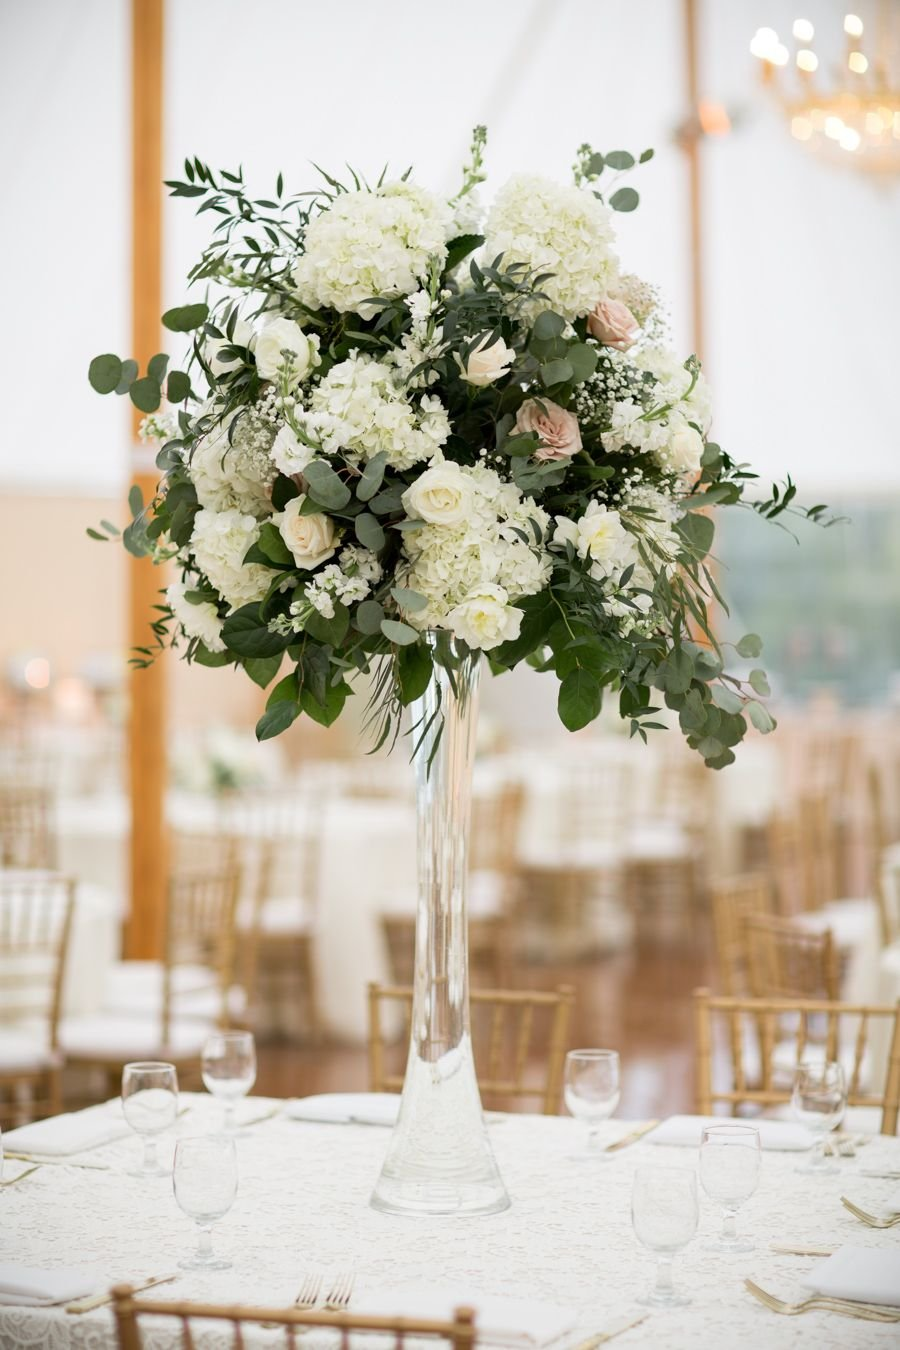 Tall Eucalyptus Rose Hydrangea Centerpiece Dining Room Table Centerpieces Ideas